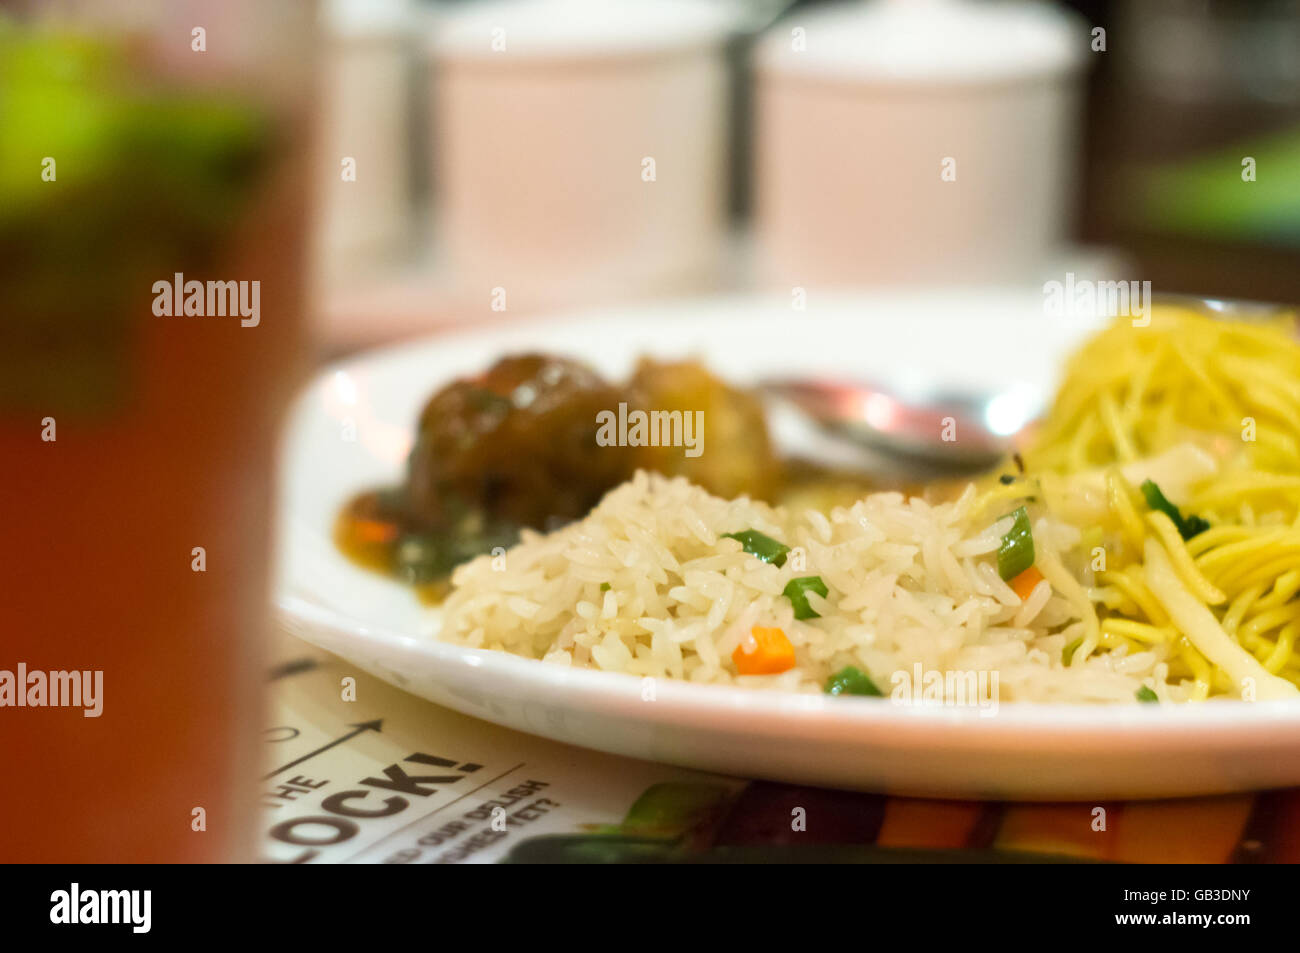 Delicious chinese food shot with a shallow depth of field. Showing oriental asian food with rice, noodles and meat - Stock Image